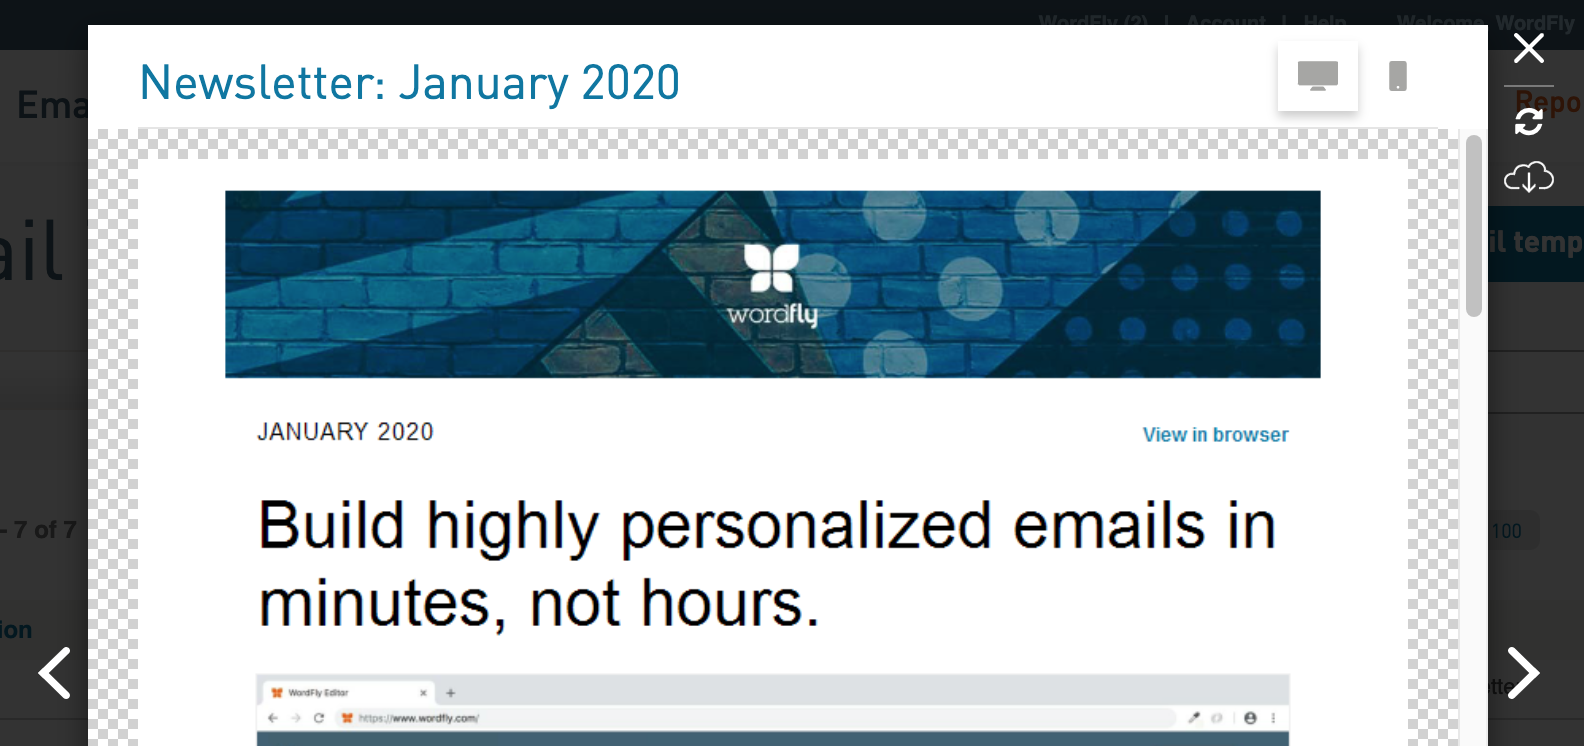 Email_EmailTemplates_GalleryView.png